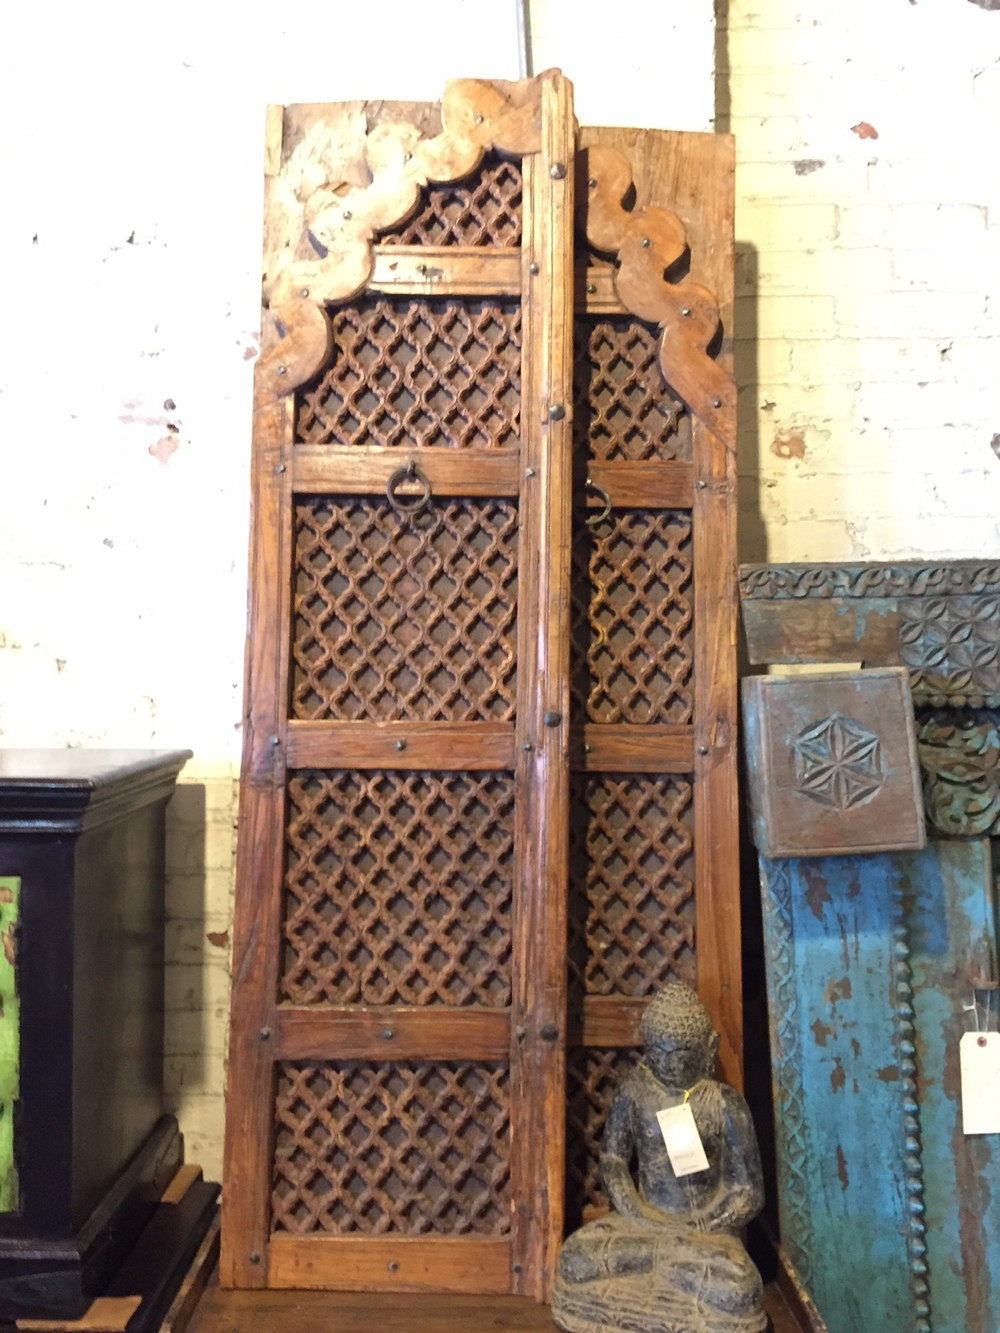 Antique Indian Window Shutters